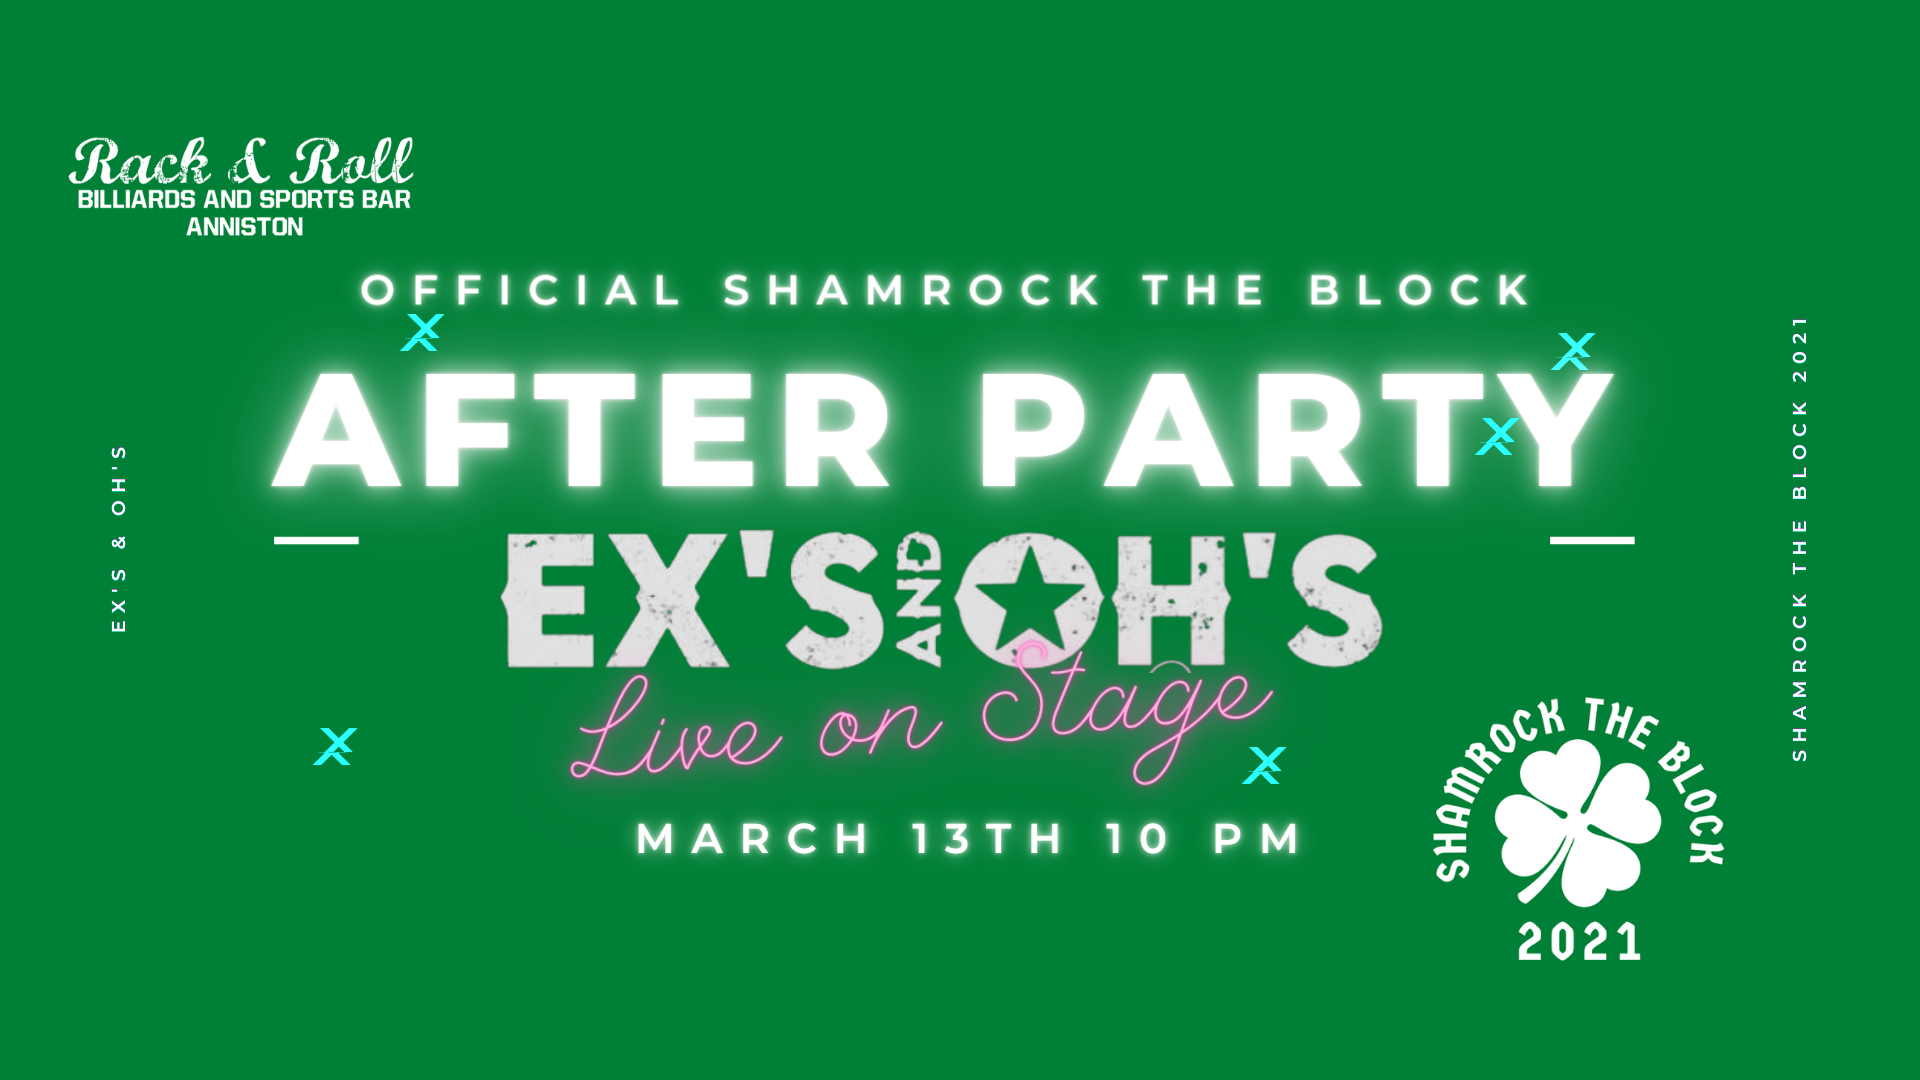 Shamrock the Block 2021